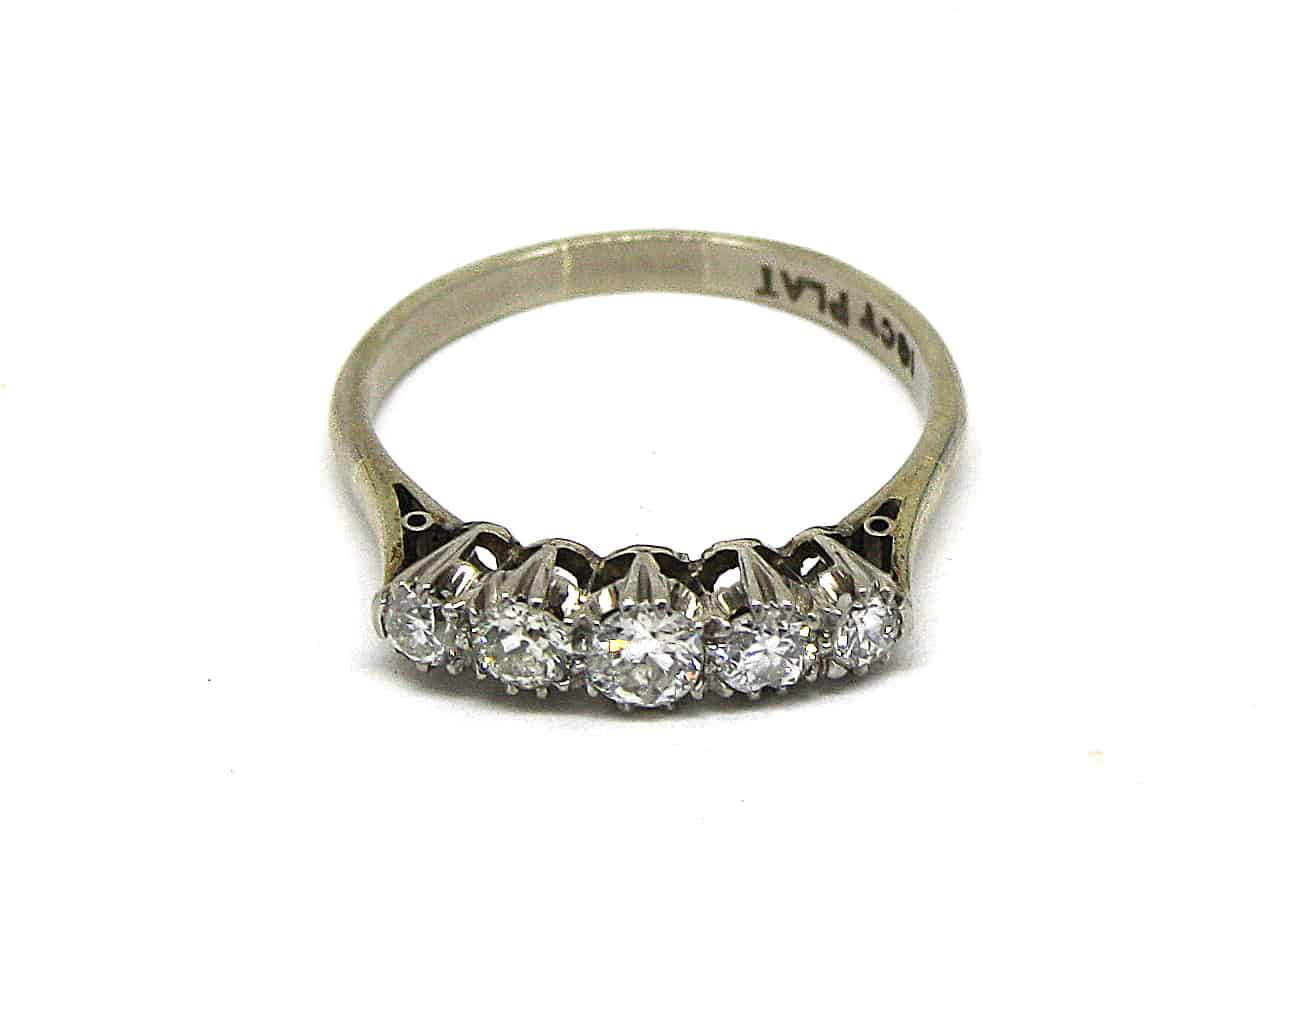 Antique Five Stone Diamond Enagagement Ring Kish